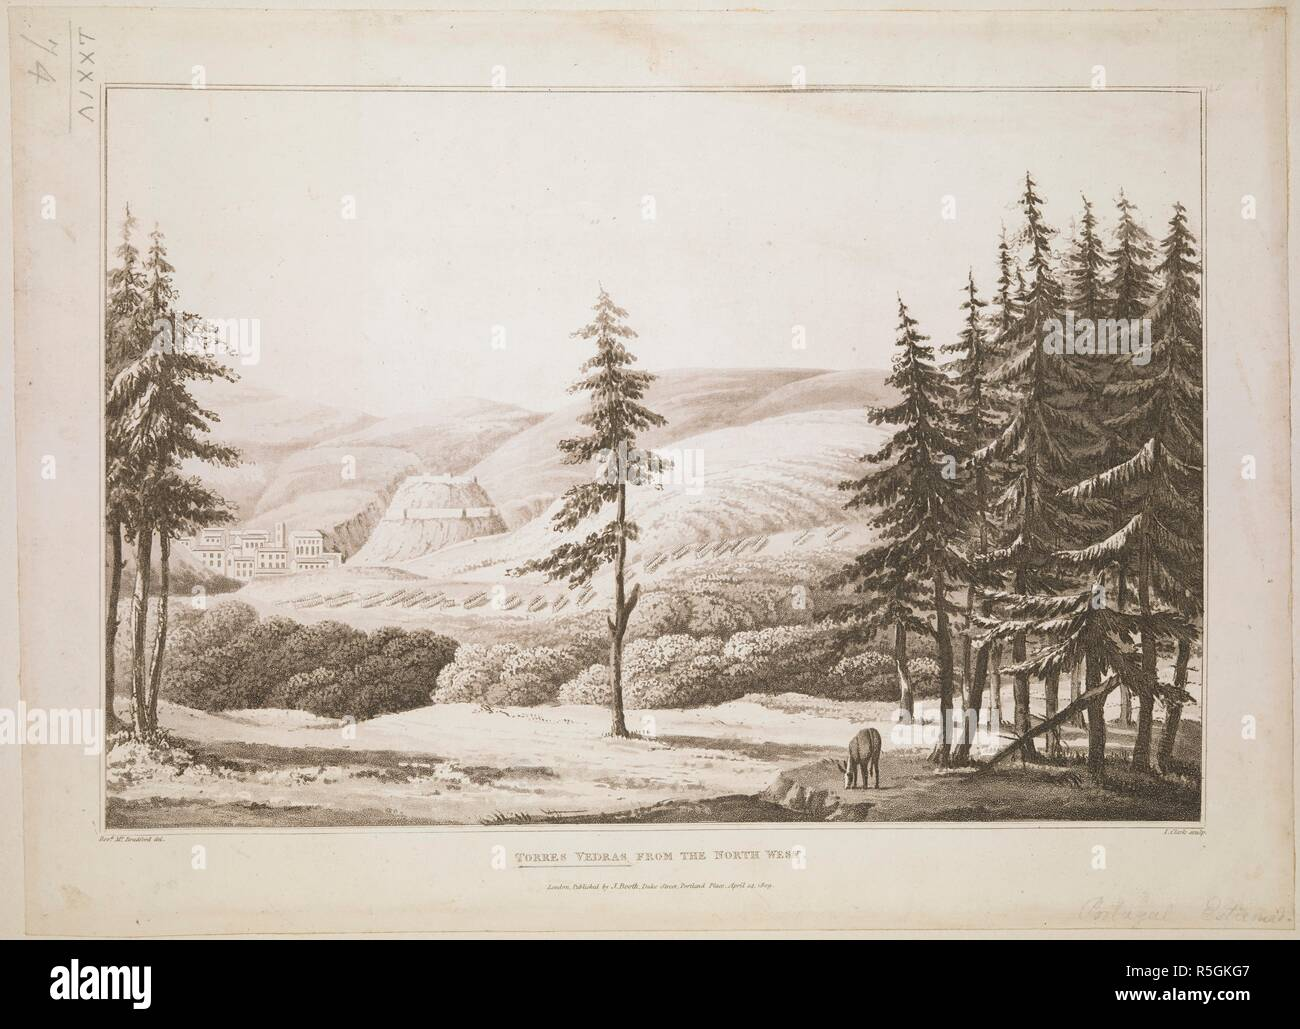 A horse grazing under some fir trees in the foreground, with British infantry squads seen in the distance on a field outside the village of Torres Vedras, hills in the background. Torres Vedras from the North West. London : Published by J. Booth, Duke Street, Portland Place, April 14 1809. Source: Maps K.Top.74.74. Language: English. Author: Clark. - Stock Image